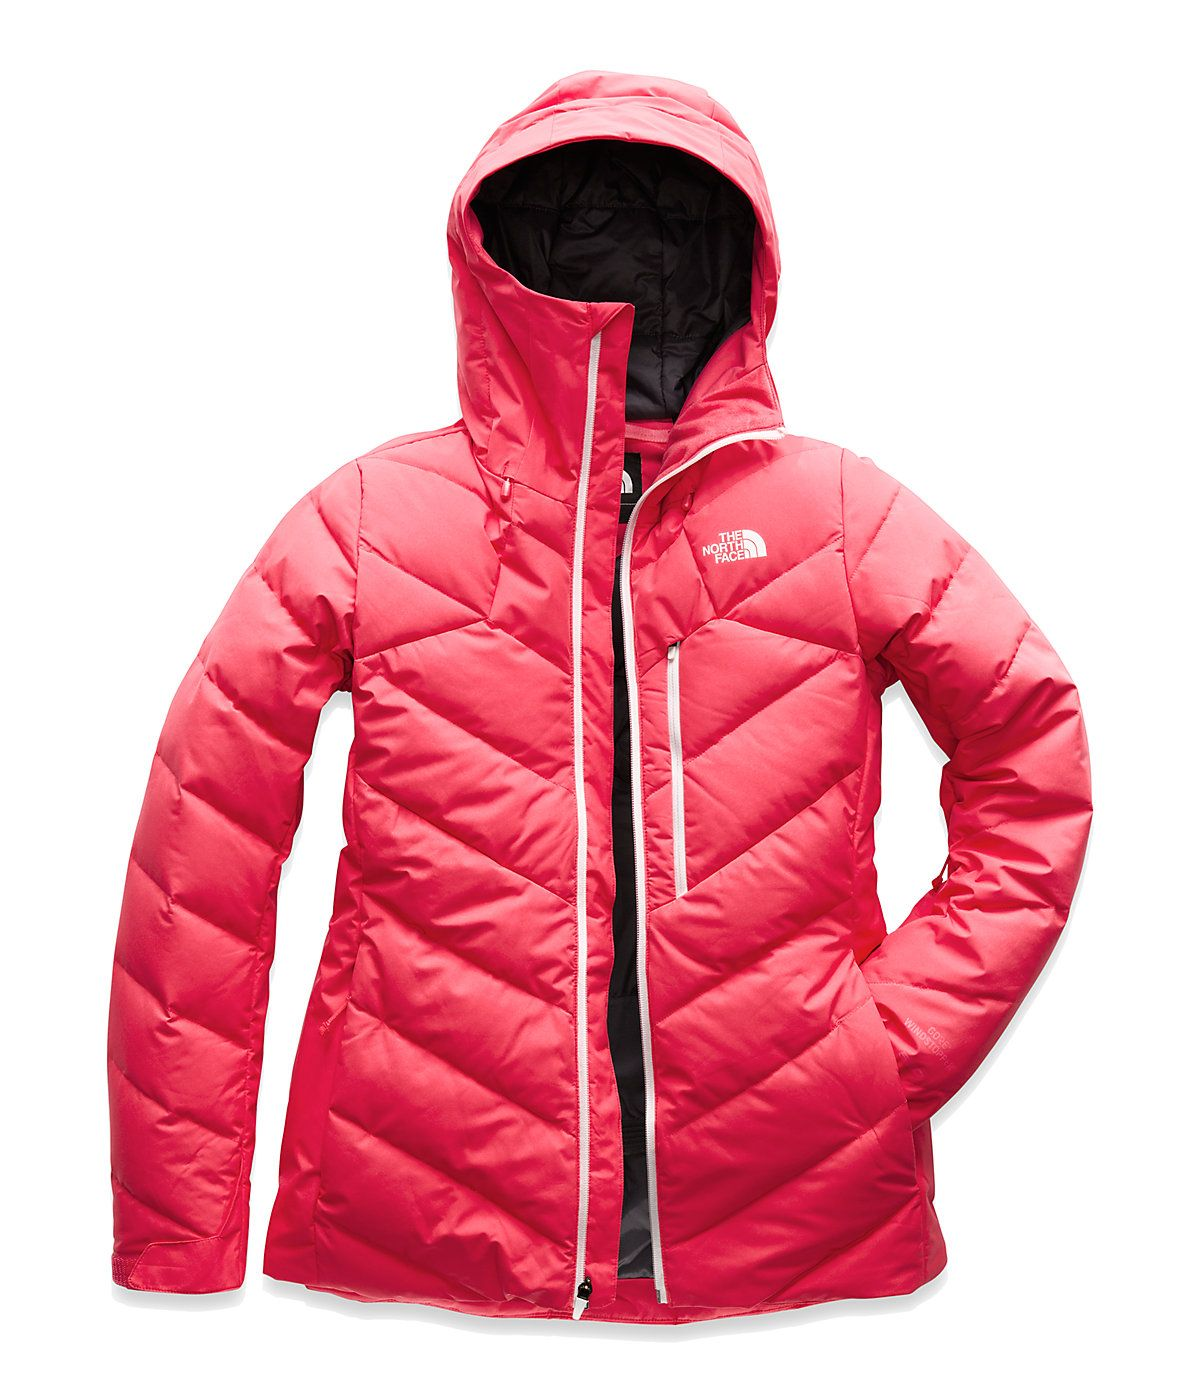 55486b9ea Women's Corefire Down Jacket in 2019 | Products | Down ski jacket ...